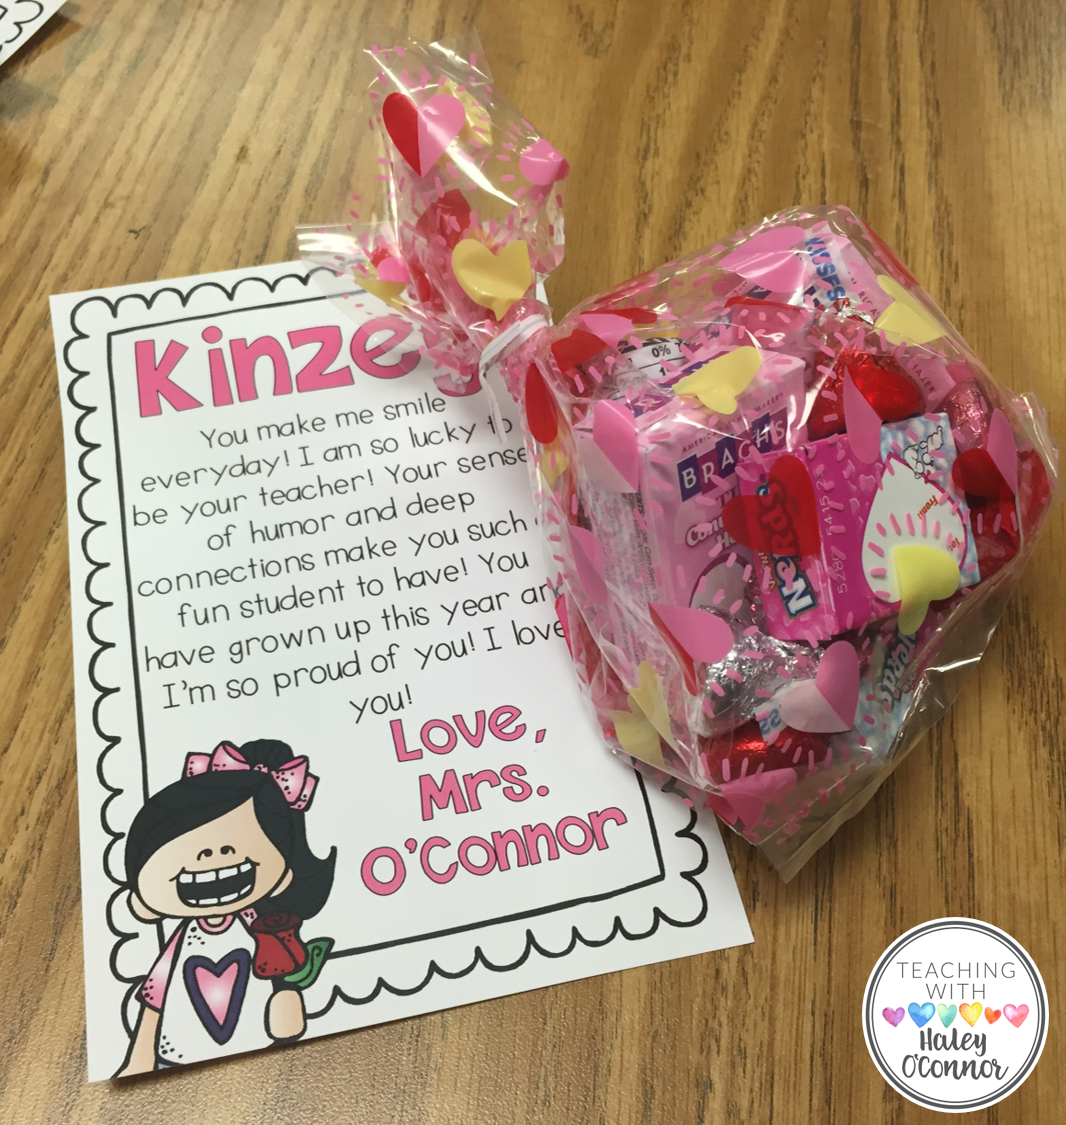 Valentine's Day Student Gifts from Teacher